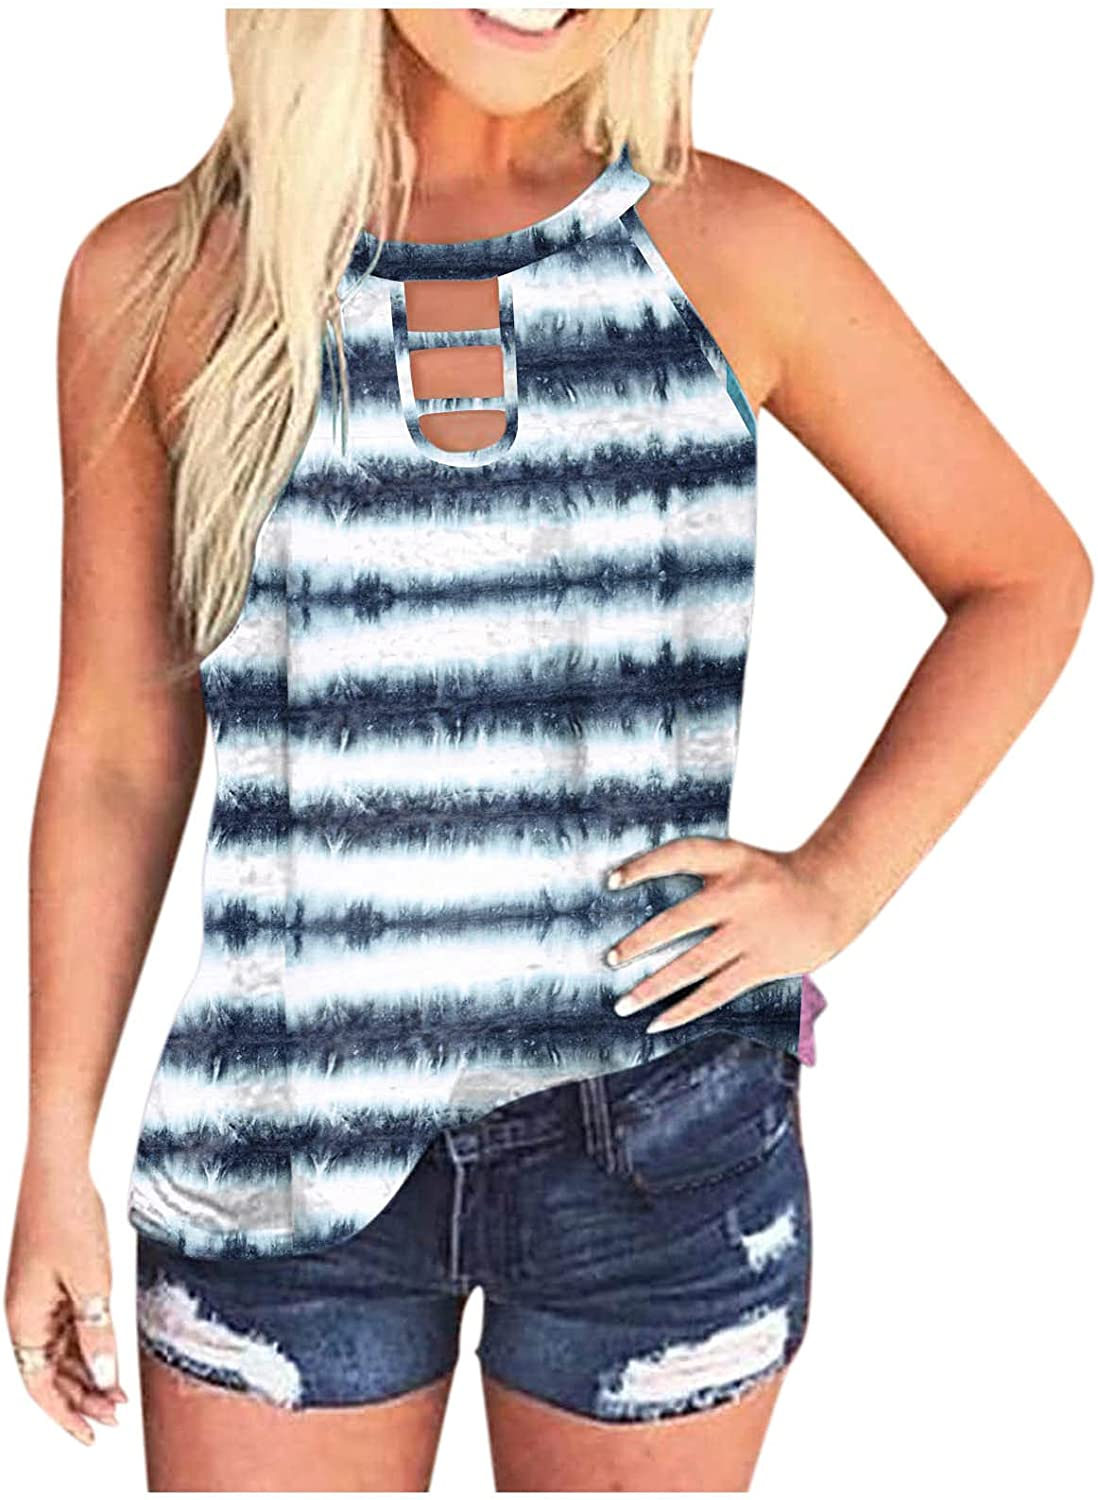 soyienma CamisoleforWomenPlusSize,AODONG Womens Womens Summer Casual Button V Neck Spaghetti Strap Cami Loose Fit Tank Tops Vest Blouse